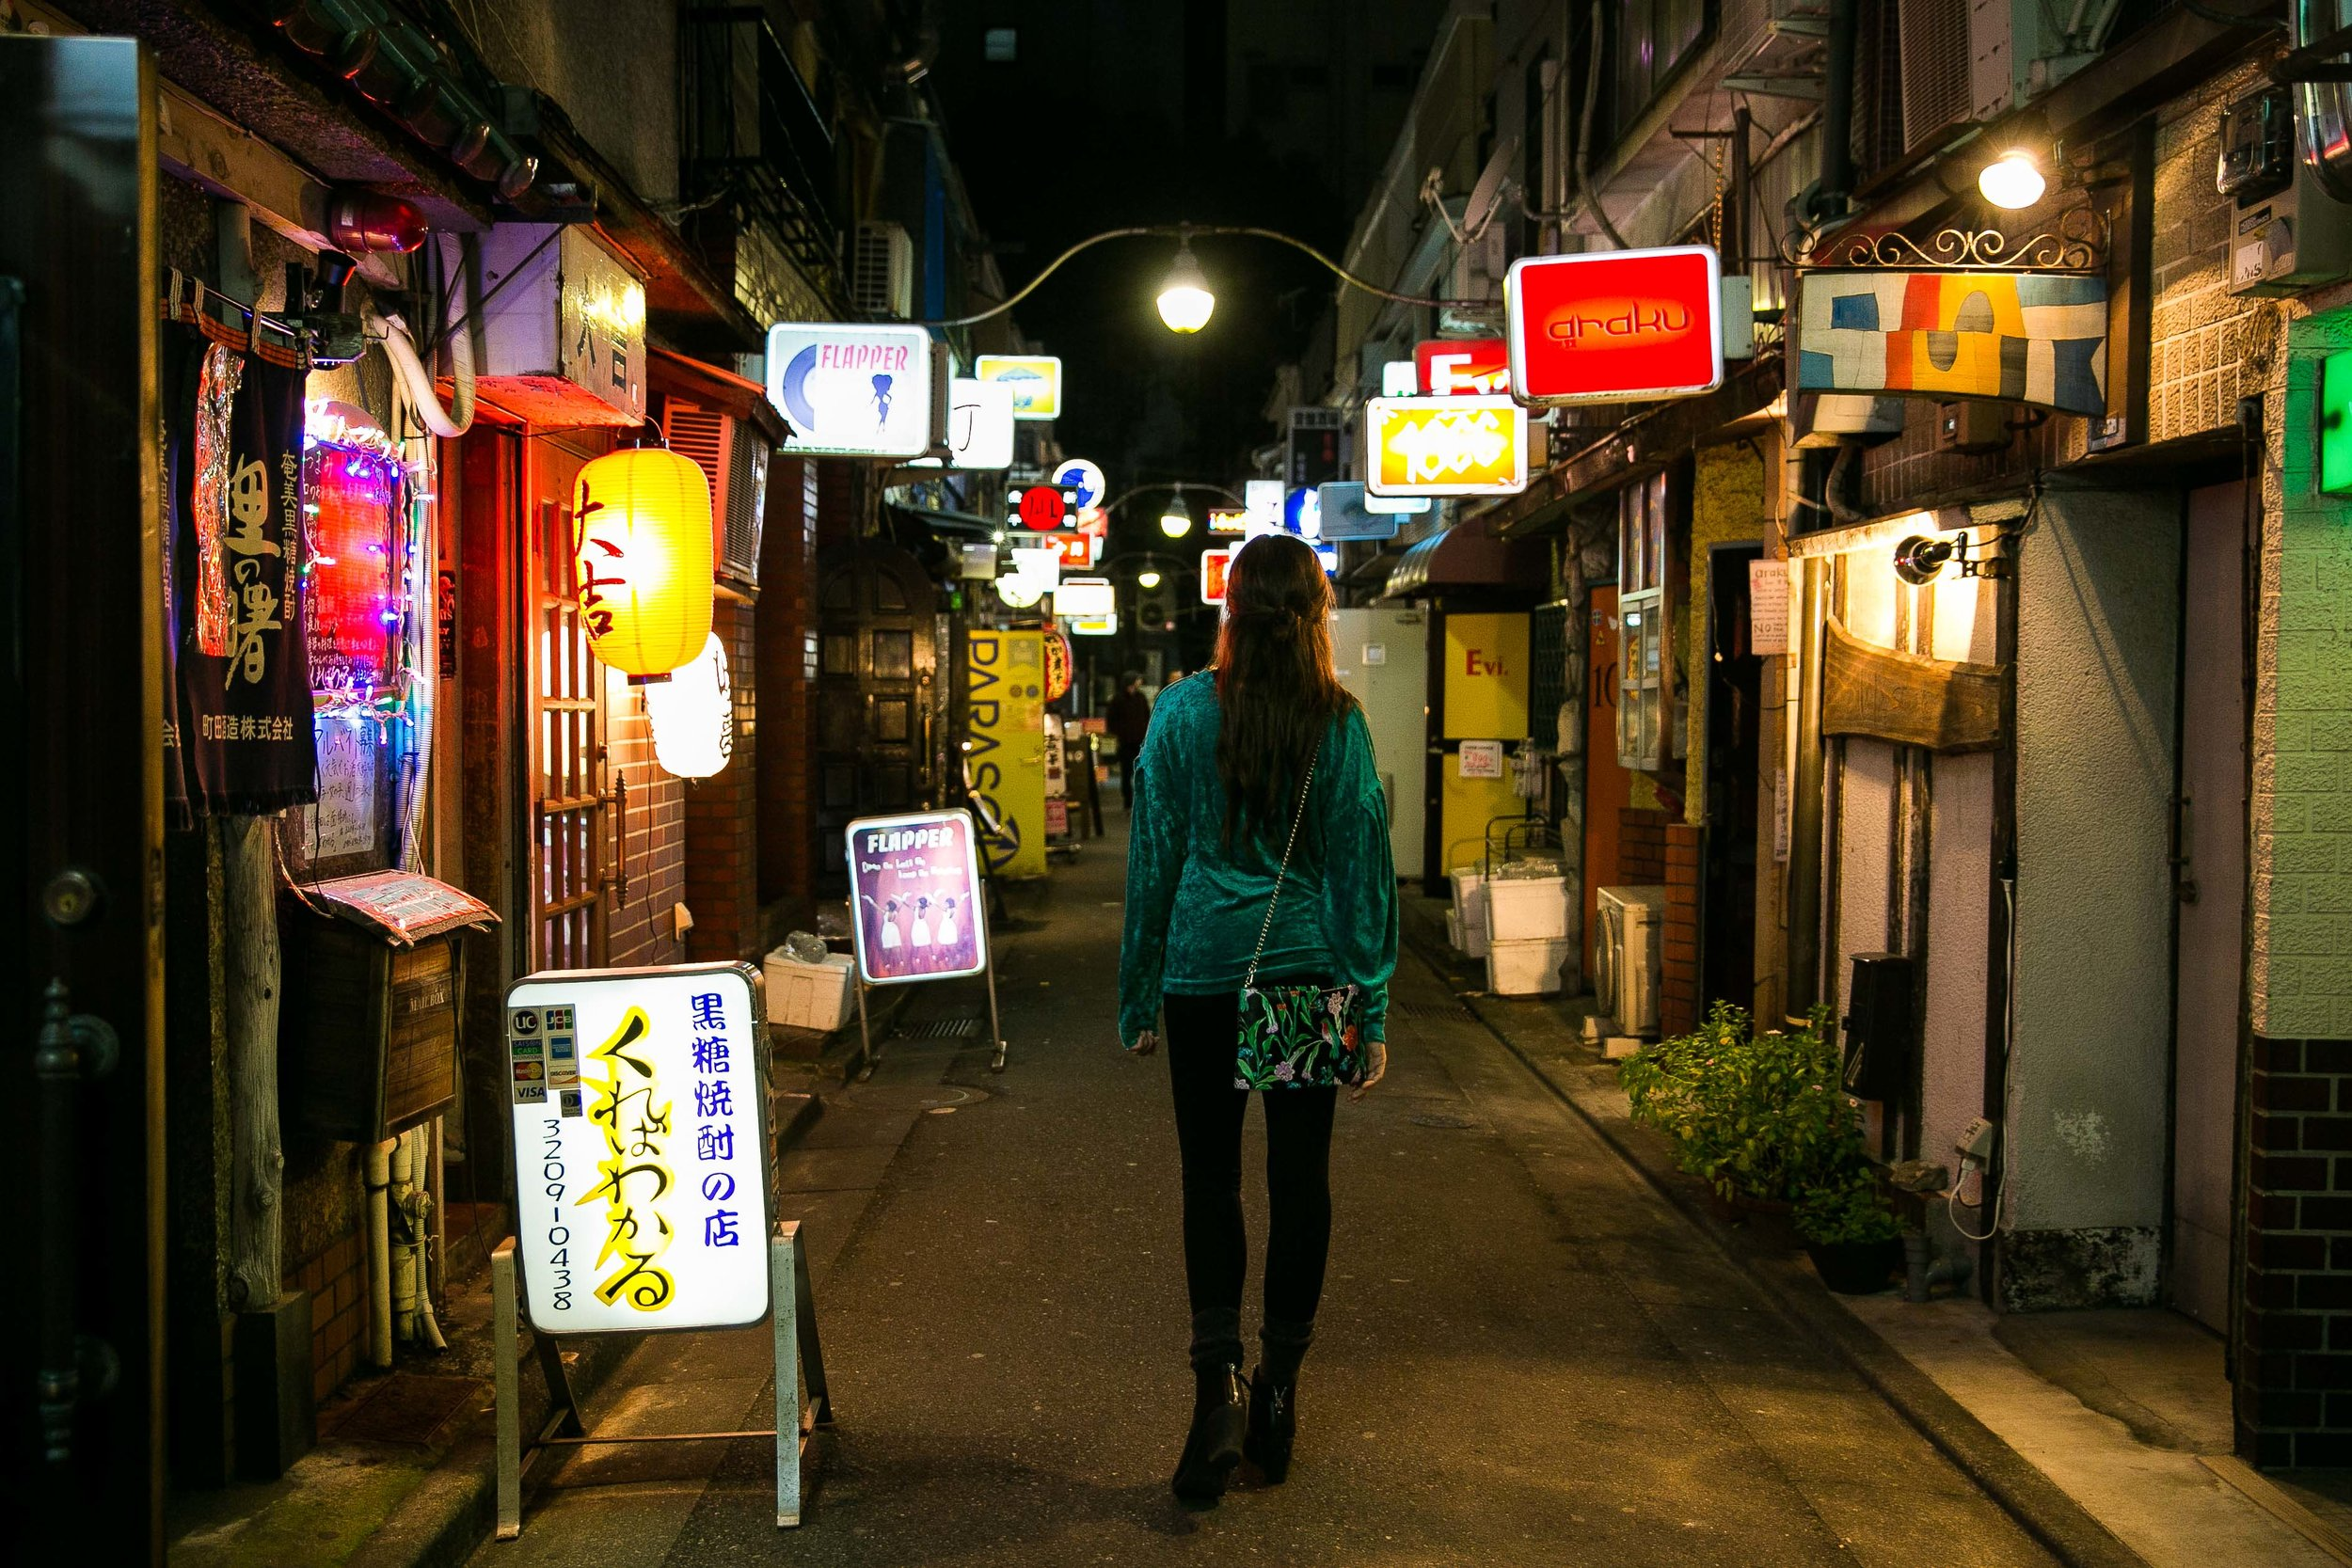 One of the best things to do in Tokyo is visit Golden Gai